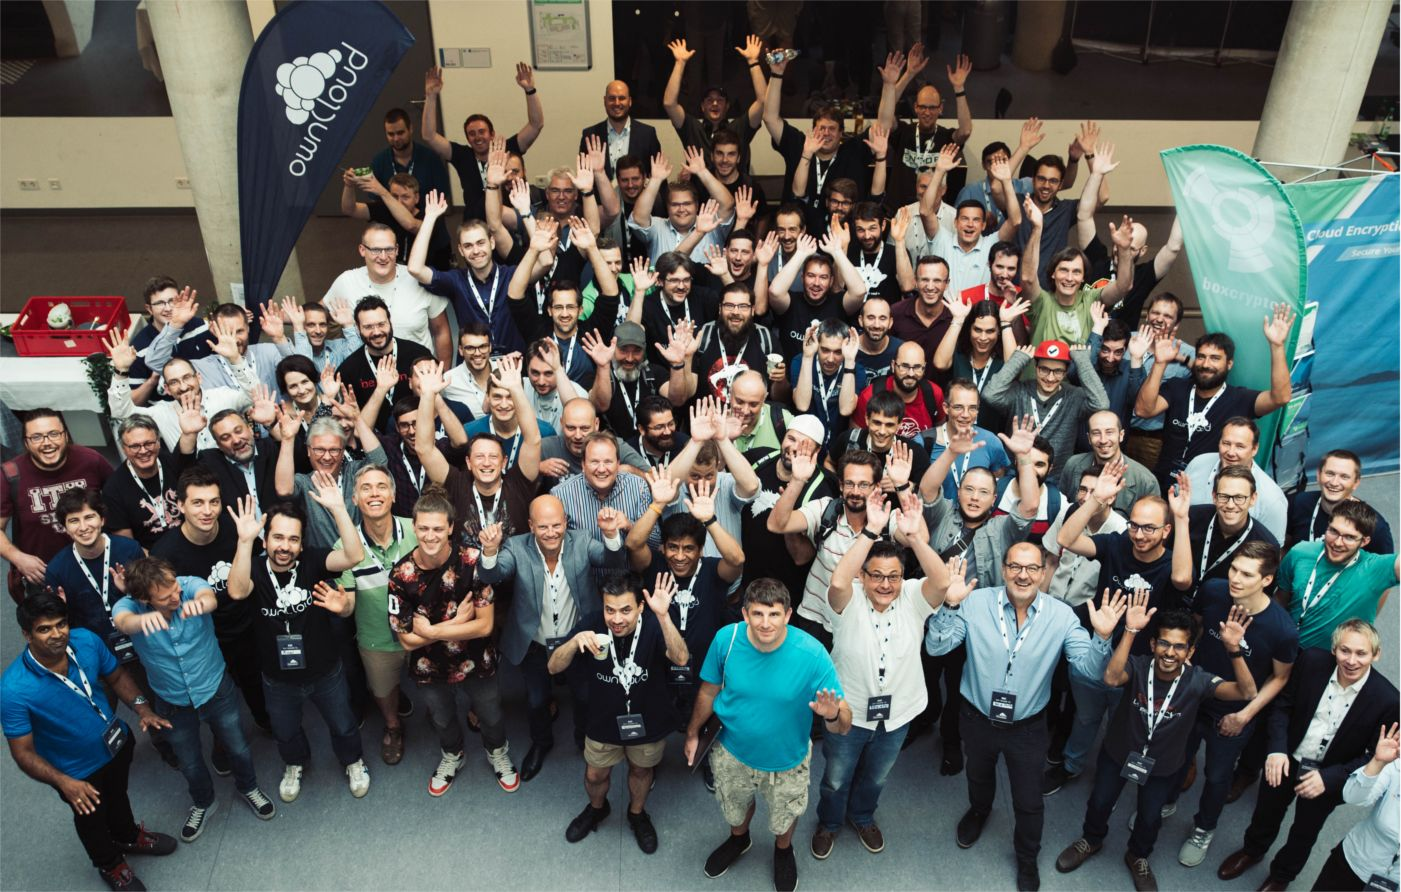 Become a Speaker at ownCloud Conference 2019